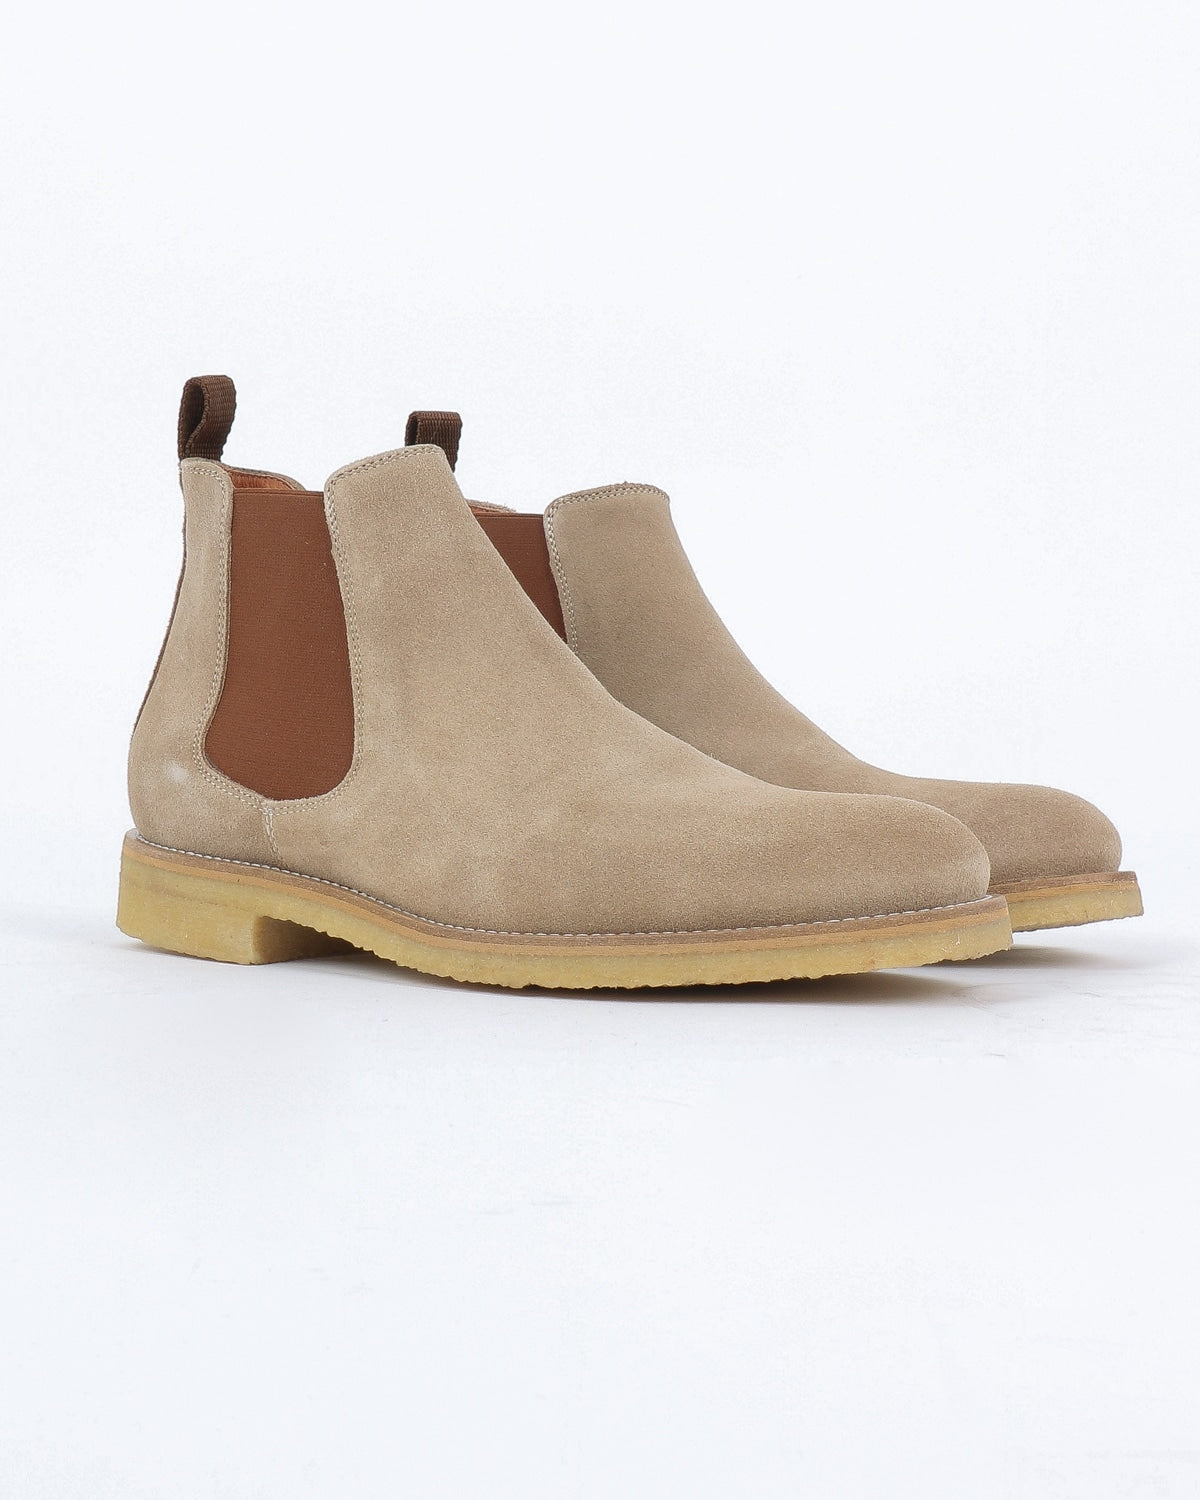 garment project_chelsea boot_tobacco_view_2_4